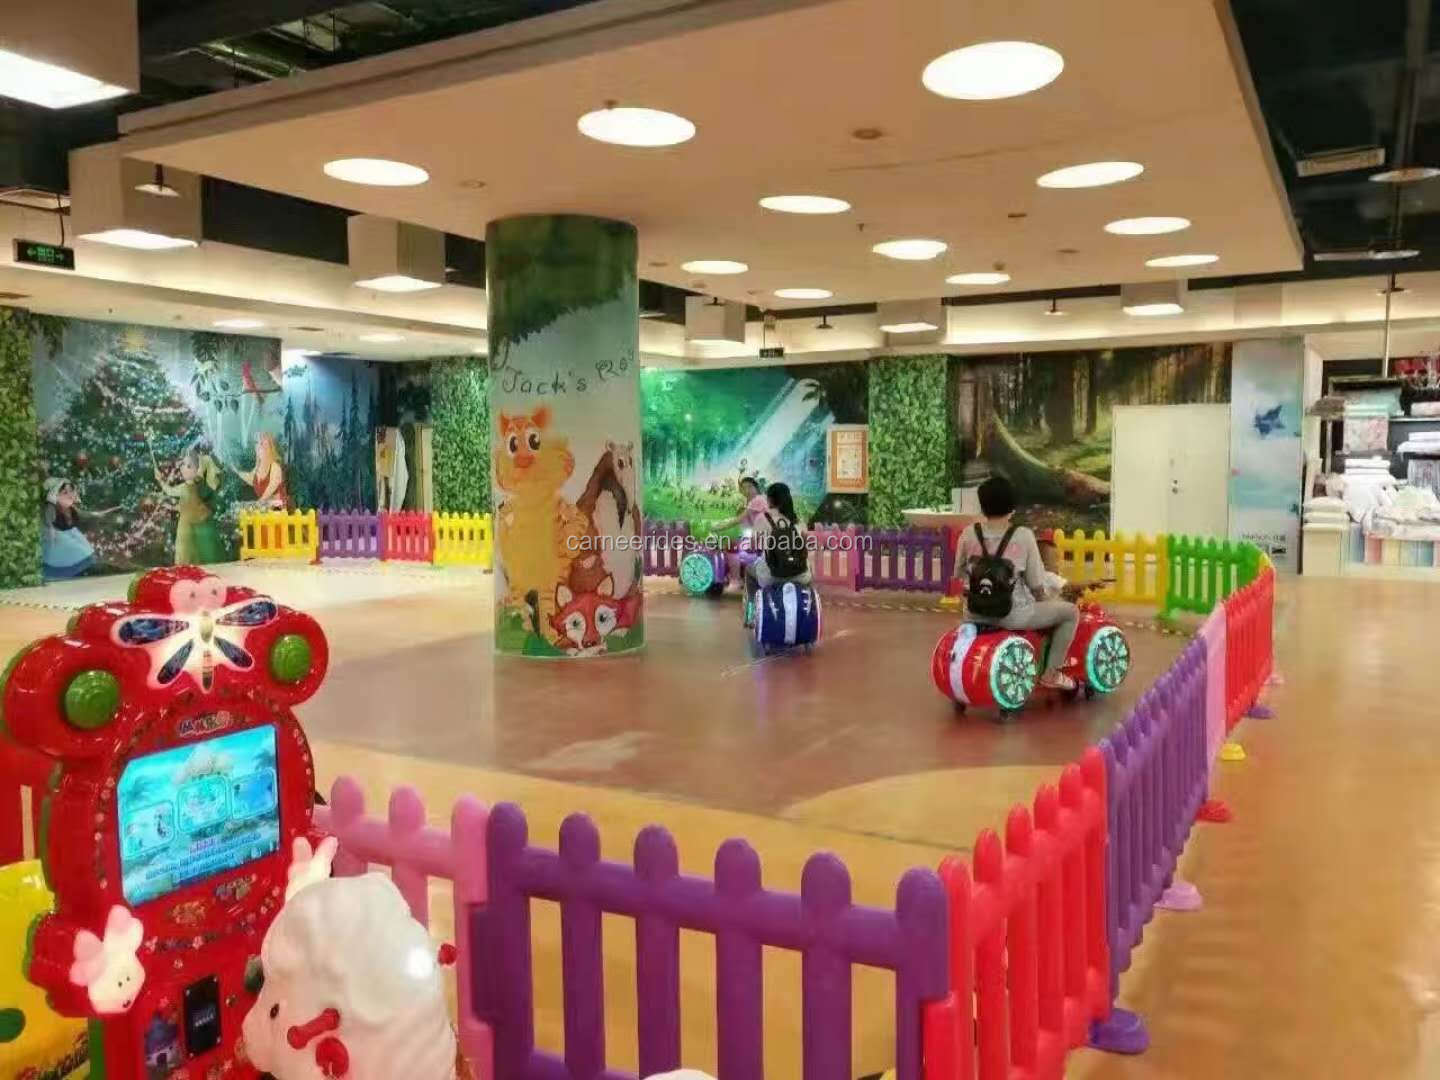 Shopping Malls Funny Children Games Battery Operated Kids Motorcycle Rides